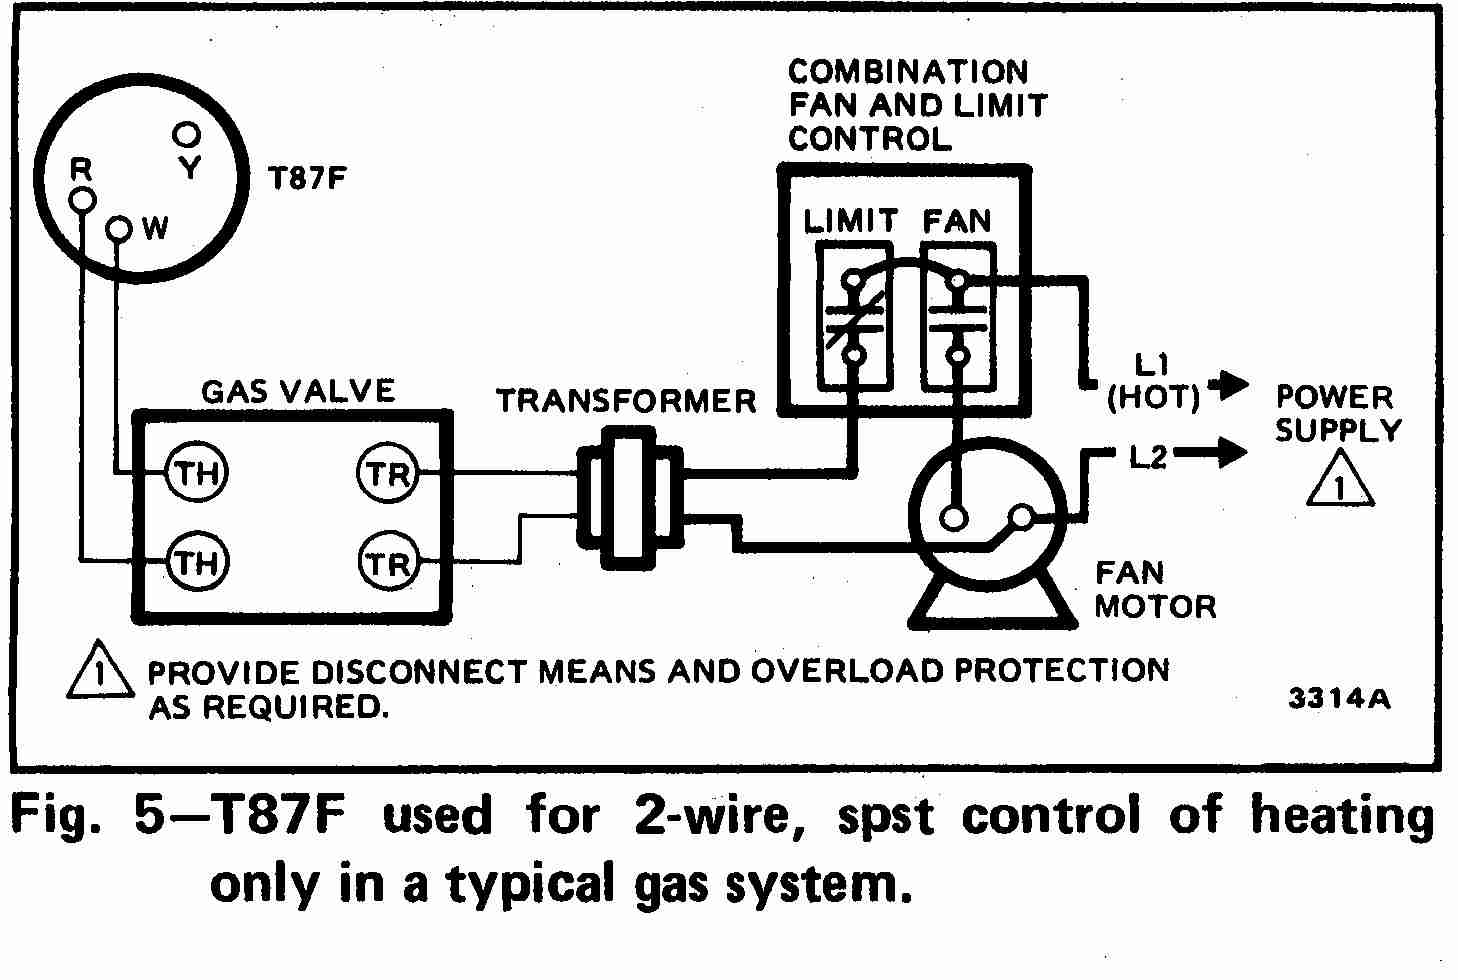 Room thermostat wiring diagrams for hvac systems honeywell t87f thermostat wiring diagram for 2 wire spst control of heating only in swarovskicordoba Choice Image